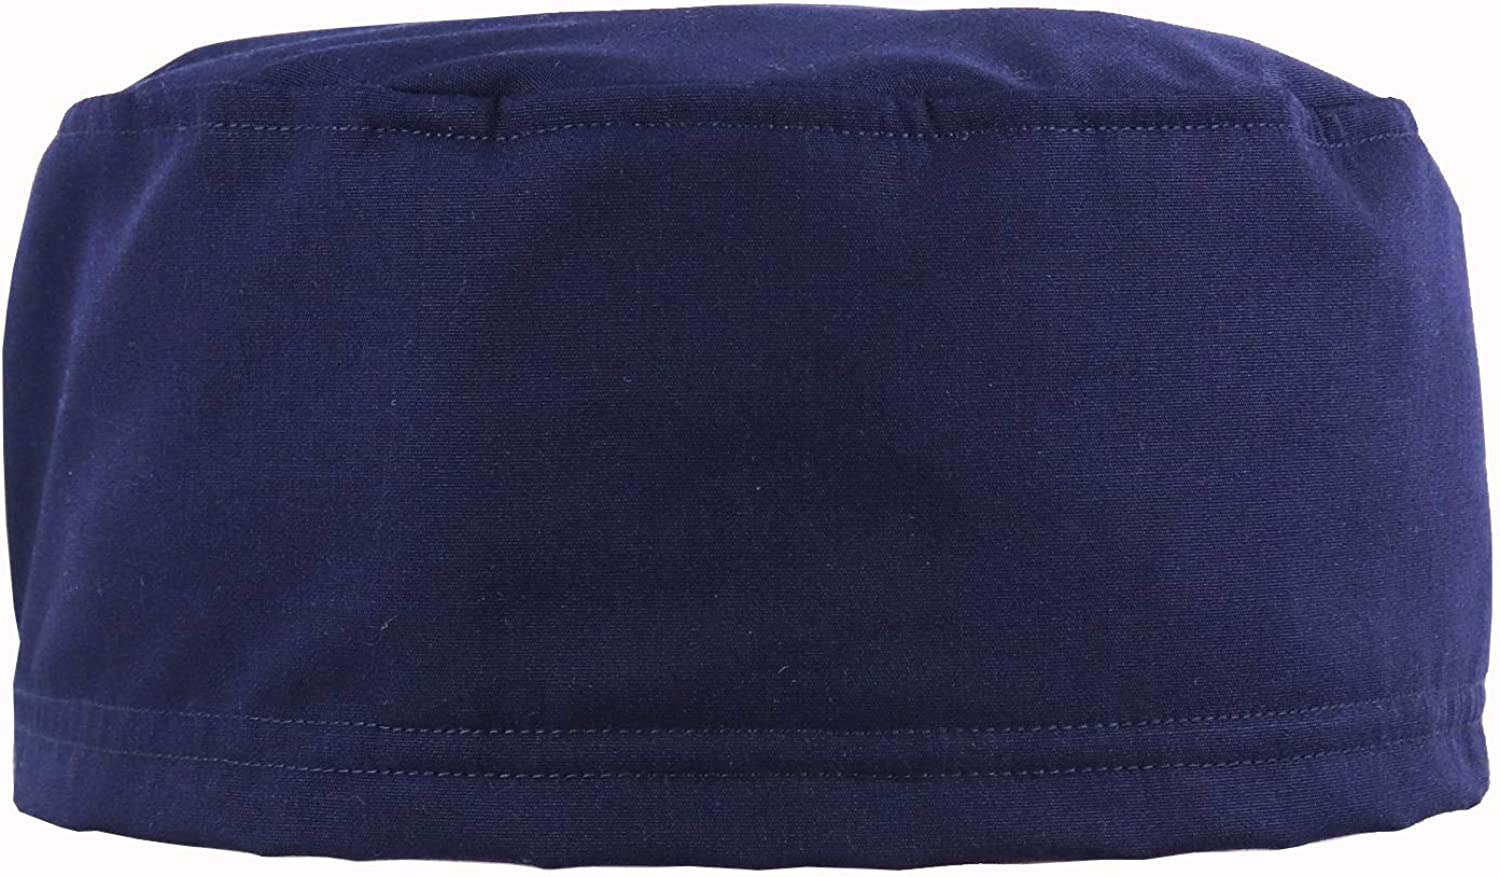 JONATHAN UNIFORM Womens and Mens Cap Working Hat One Size Multiple Color Free Size